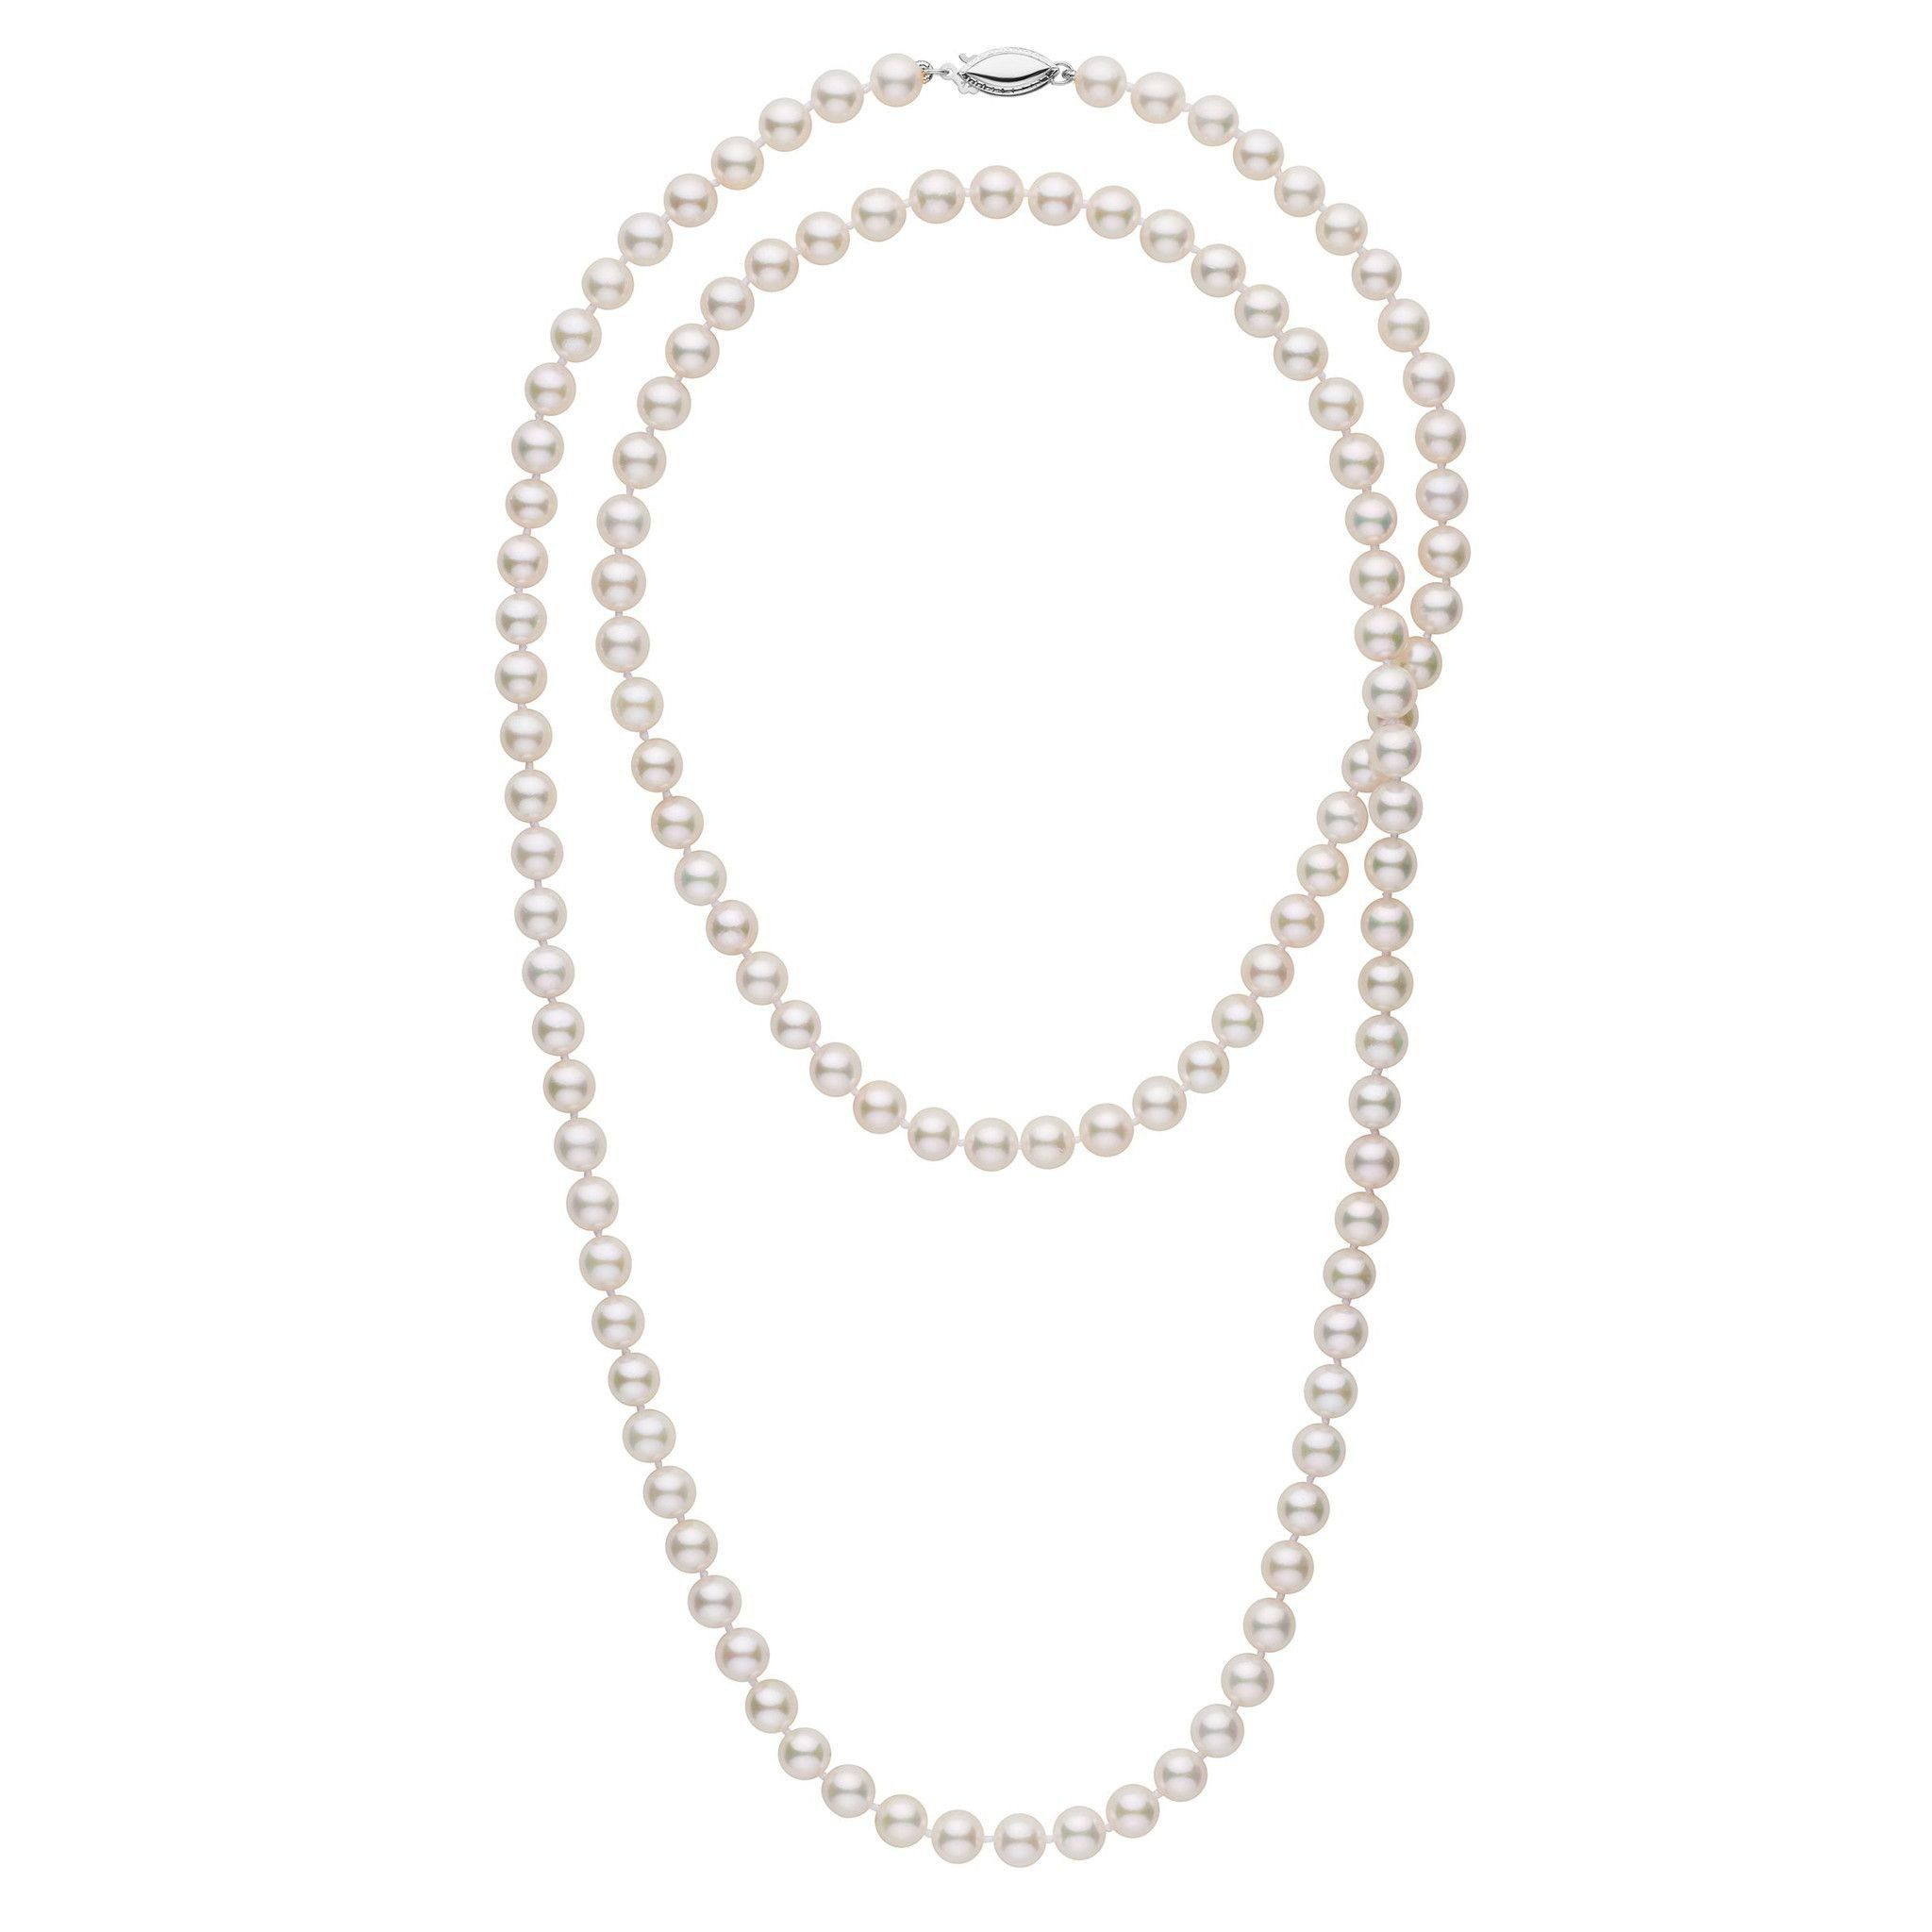 6.5-7.0 mm 36 Inch AA+ White Akoya Pearl Necklace